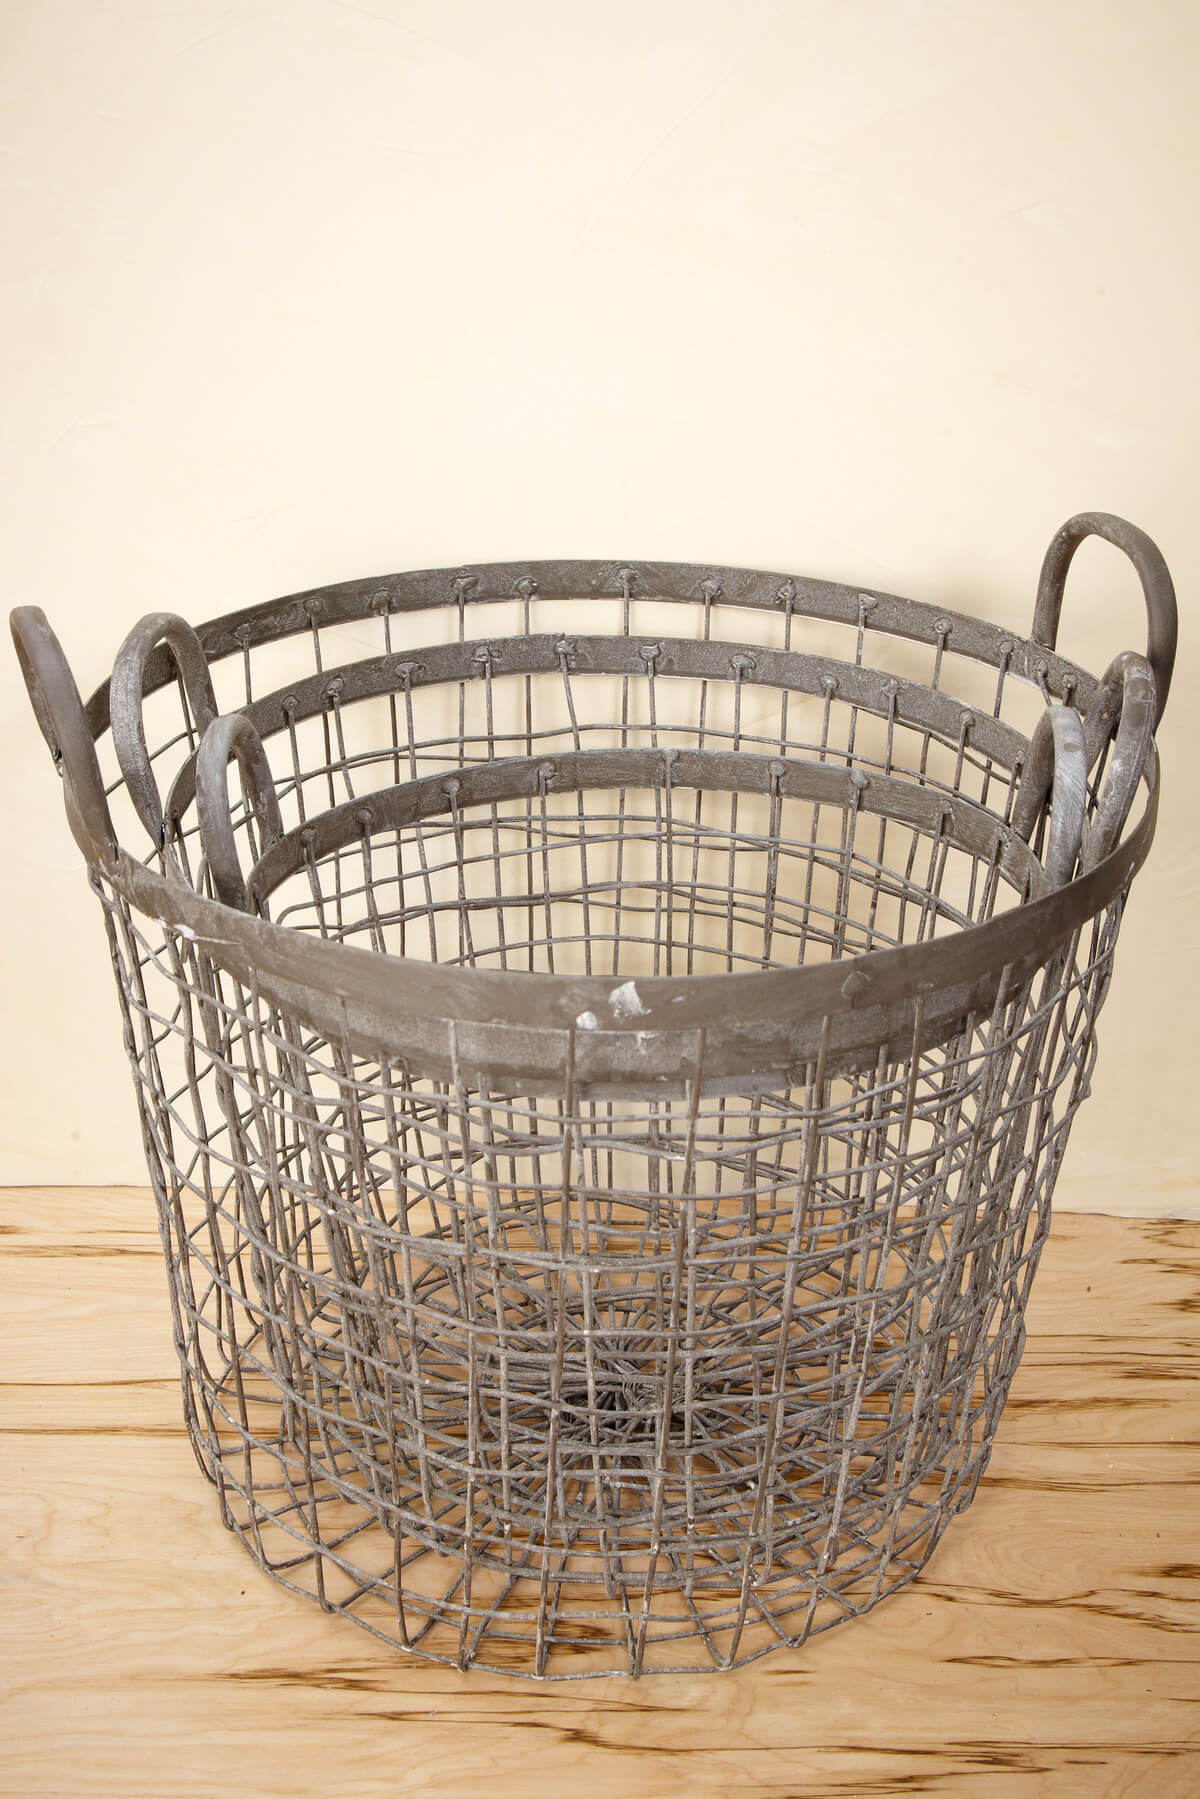 Includes two wire baskets for storage with built-in handles for mDesign Household Wire Storage Organizer Bin Basket with Built-in Handles for Kitchen Cabinets, Pantry, Closets, Bedrooms, Bathrooms - 16